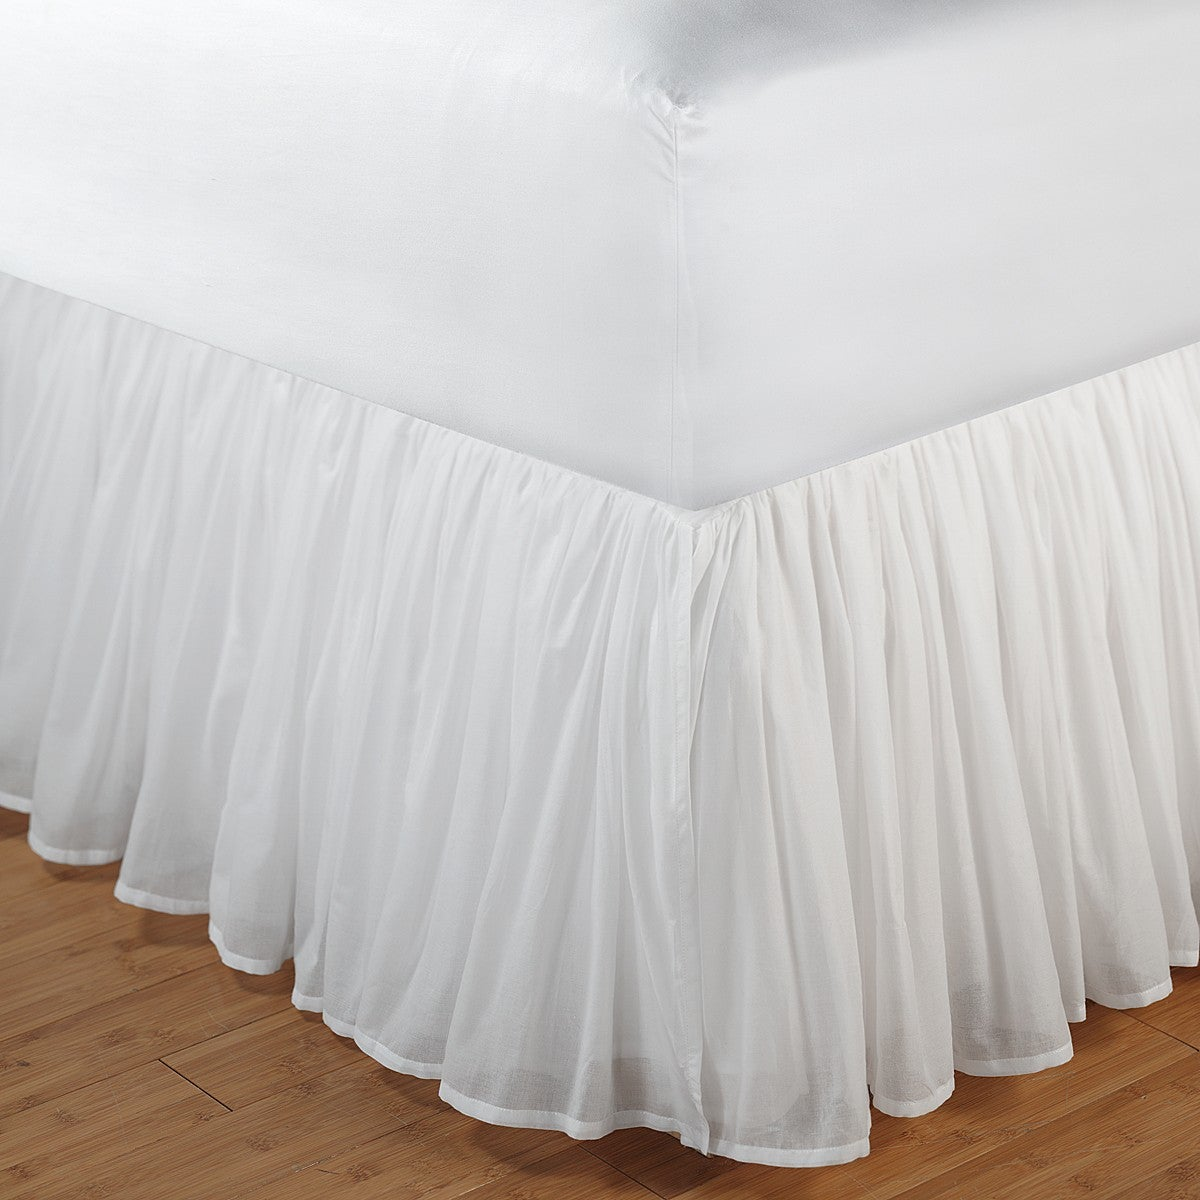 Greenland Home Fashions White King Size Voile 15 Inch Drop Bedskirt Free Shipping Today 6128151